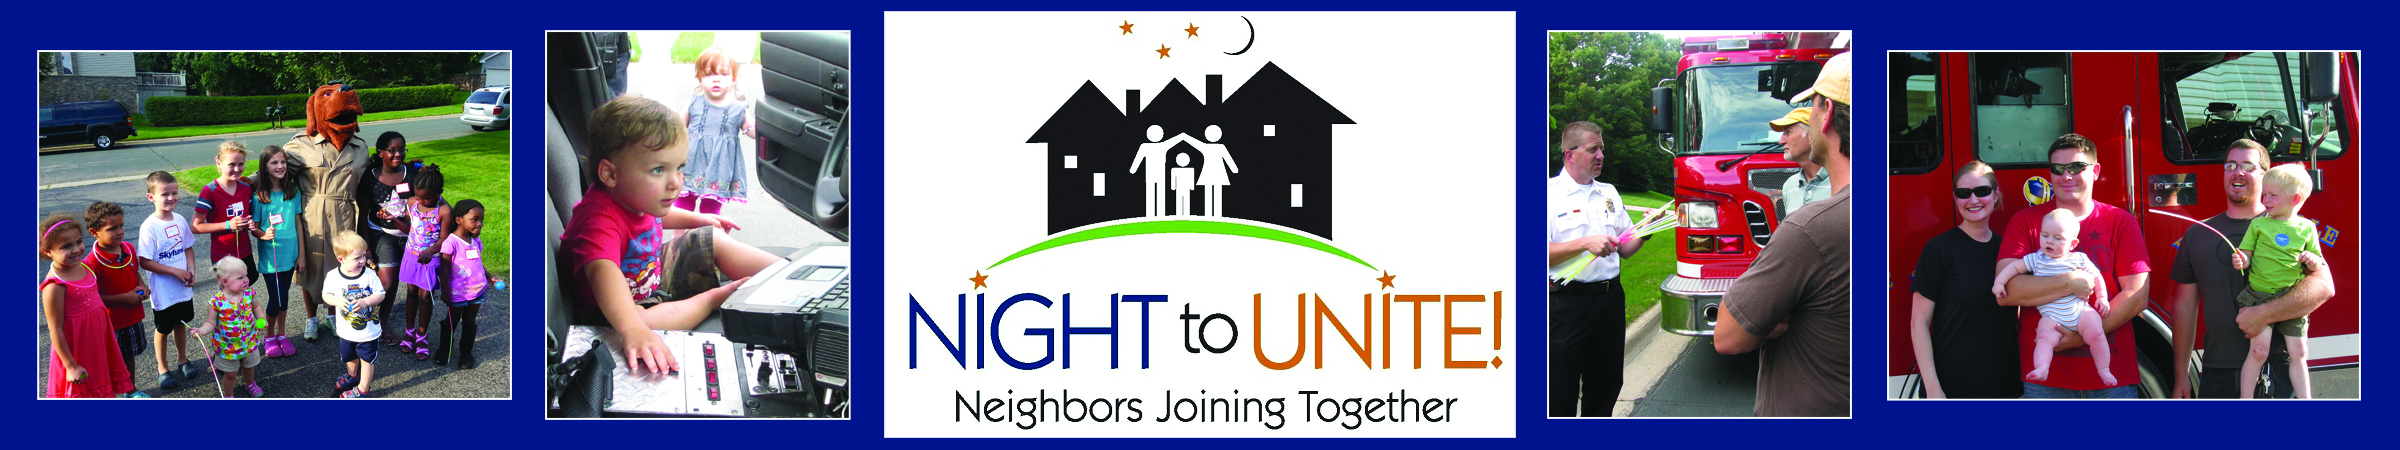 Experience Burnsville's Night to Unite, August 1, 2017